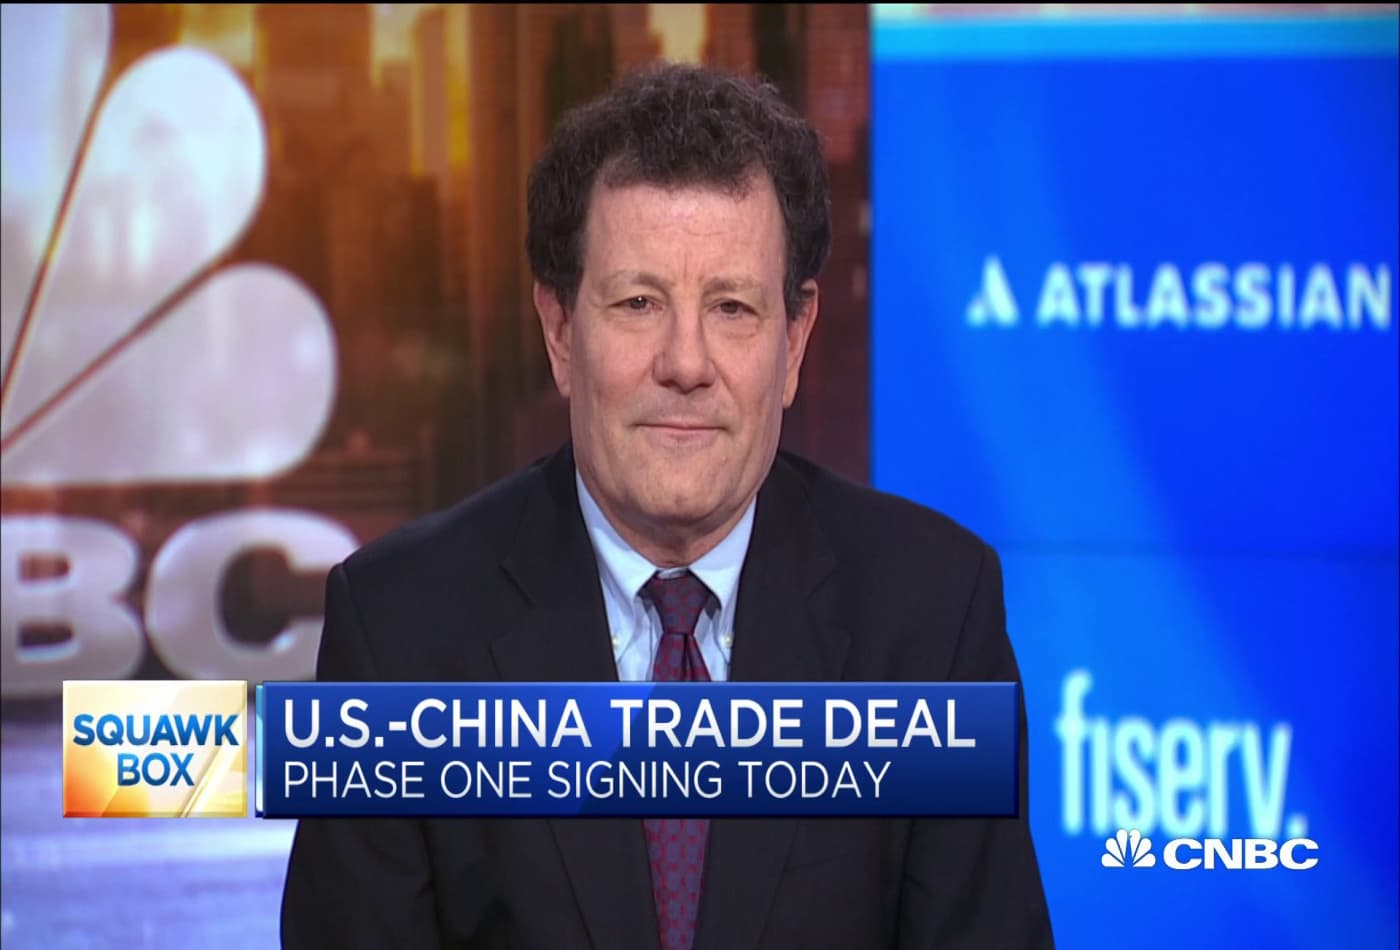 US-China phase one trade deal seems better than expected: Pro